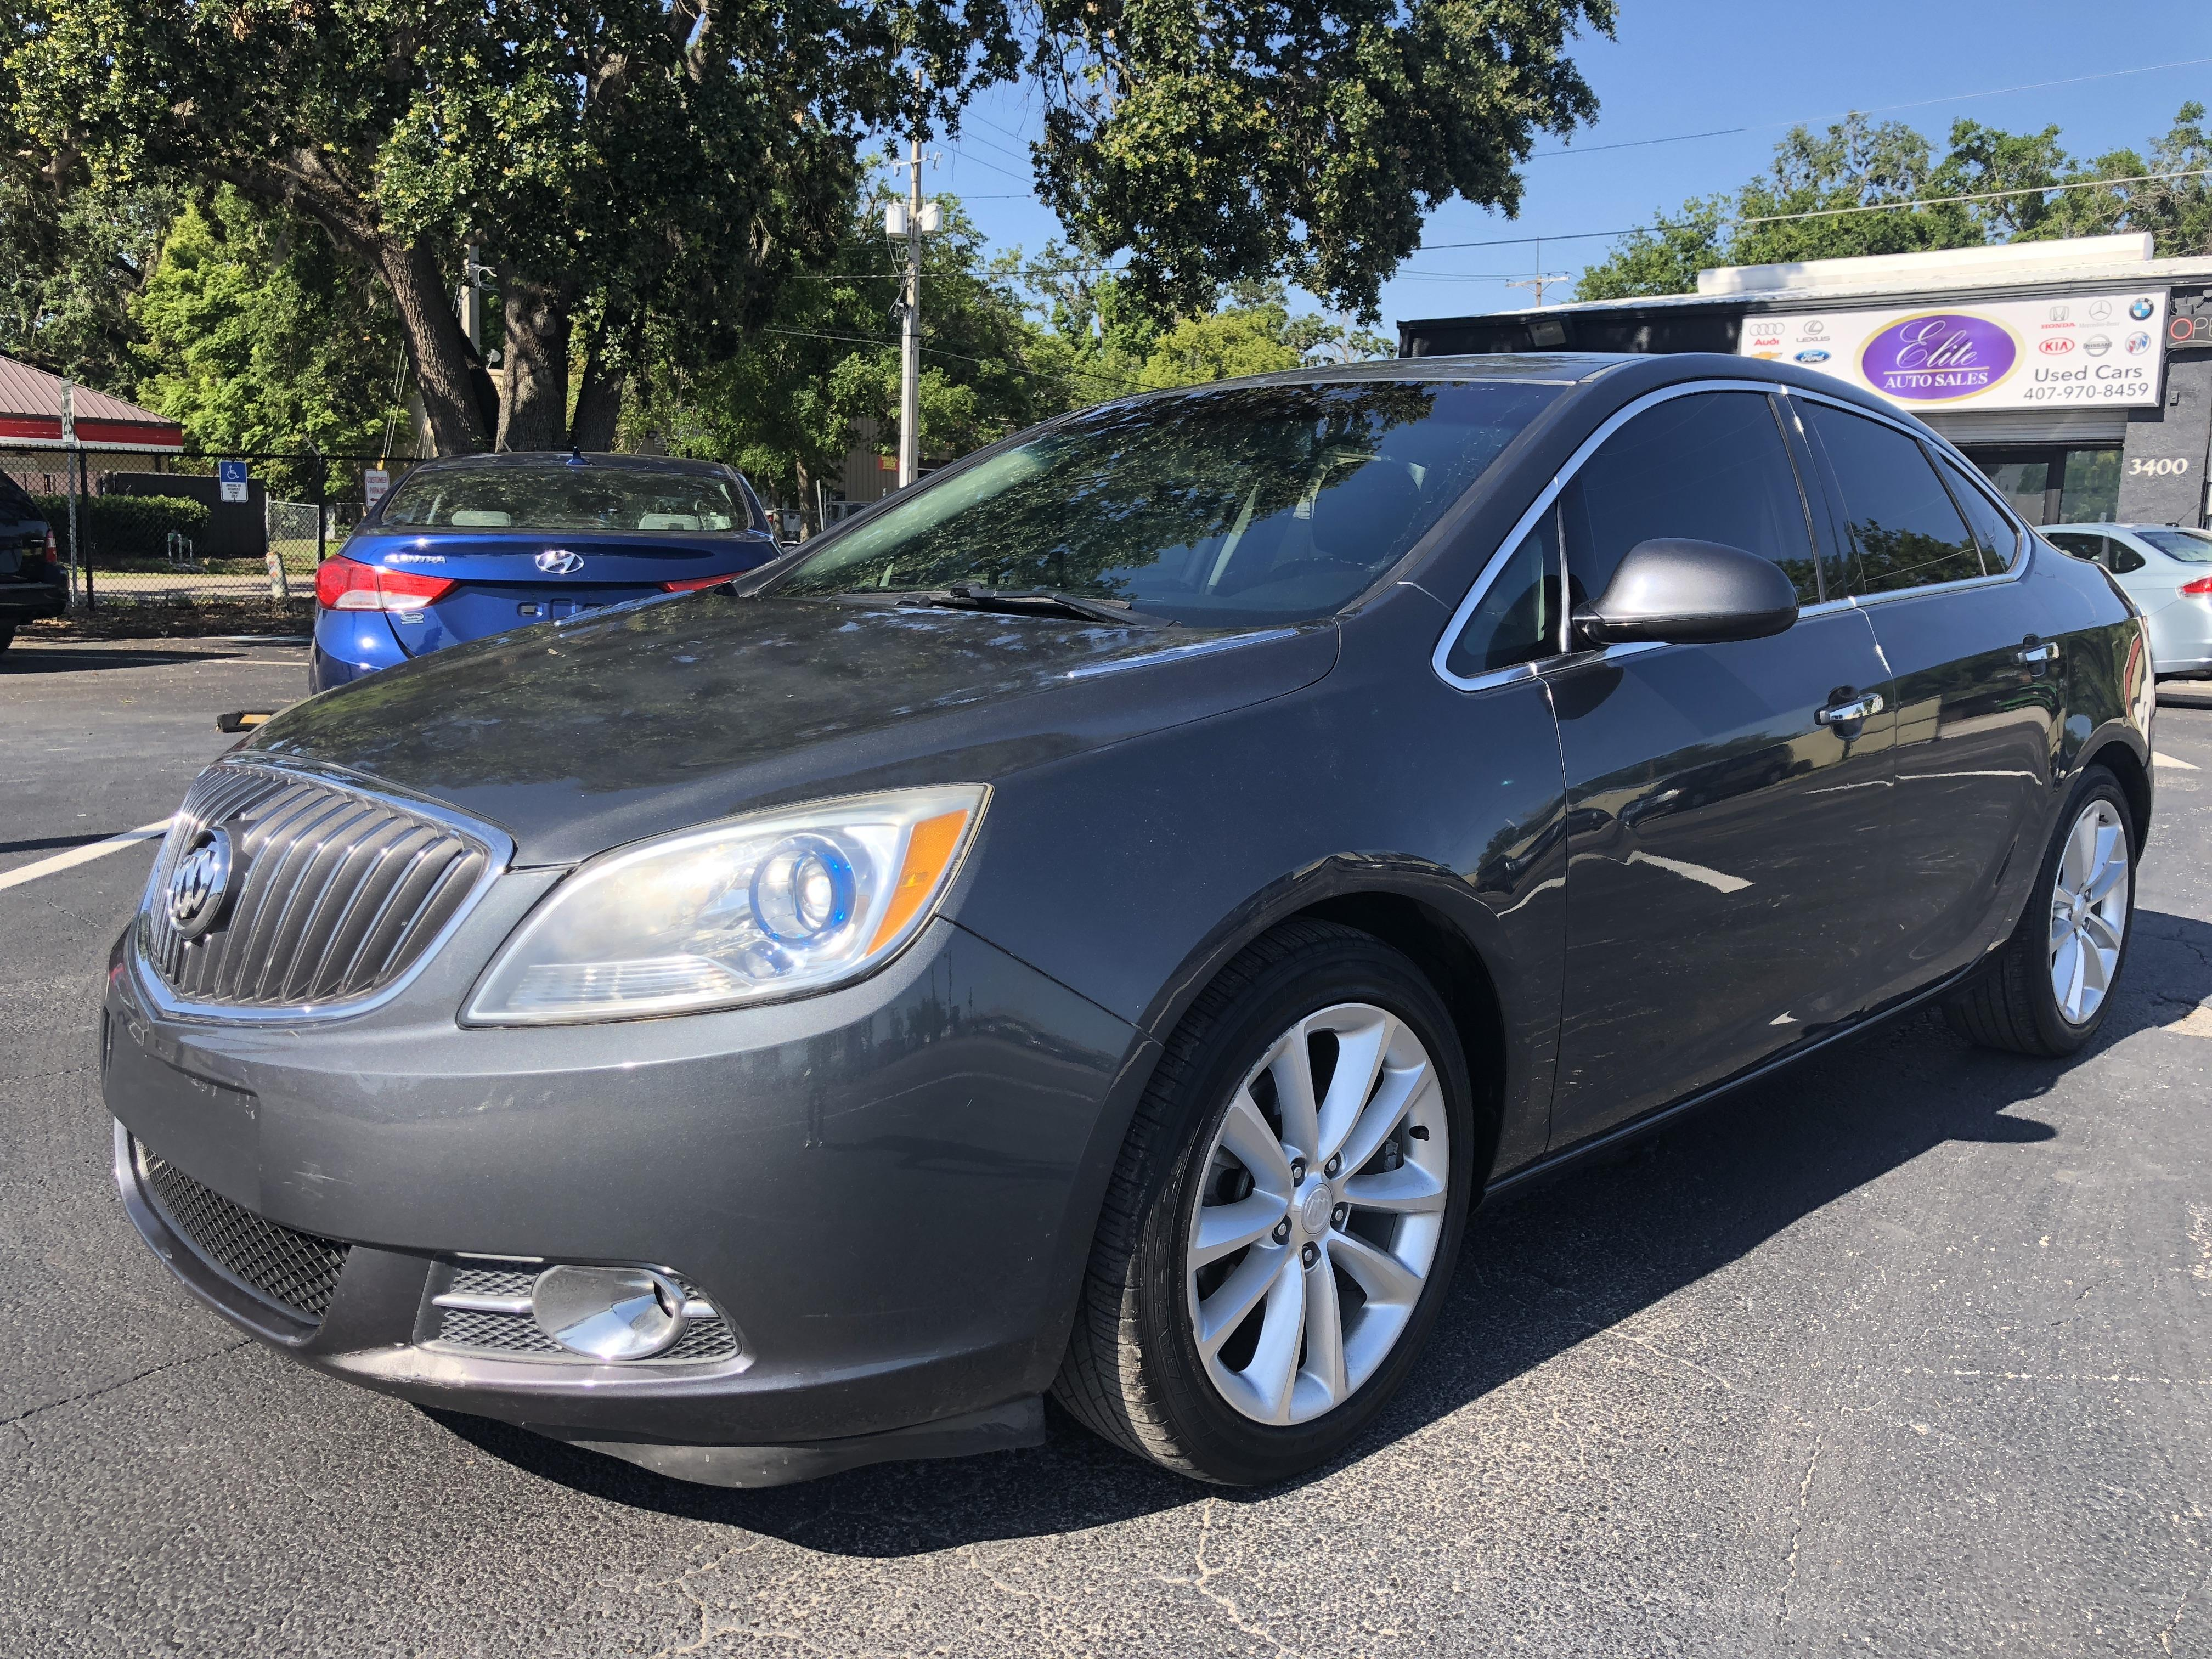 Charming 2013 Buick Verano Leather FWD Used Cars In Orlando, FL 32839